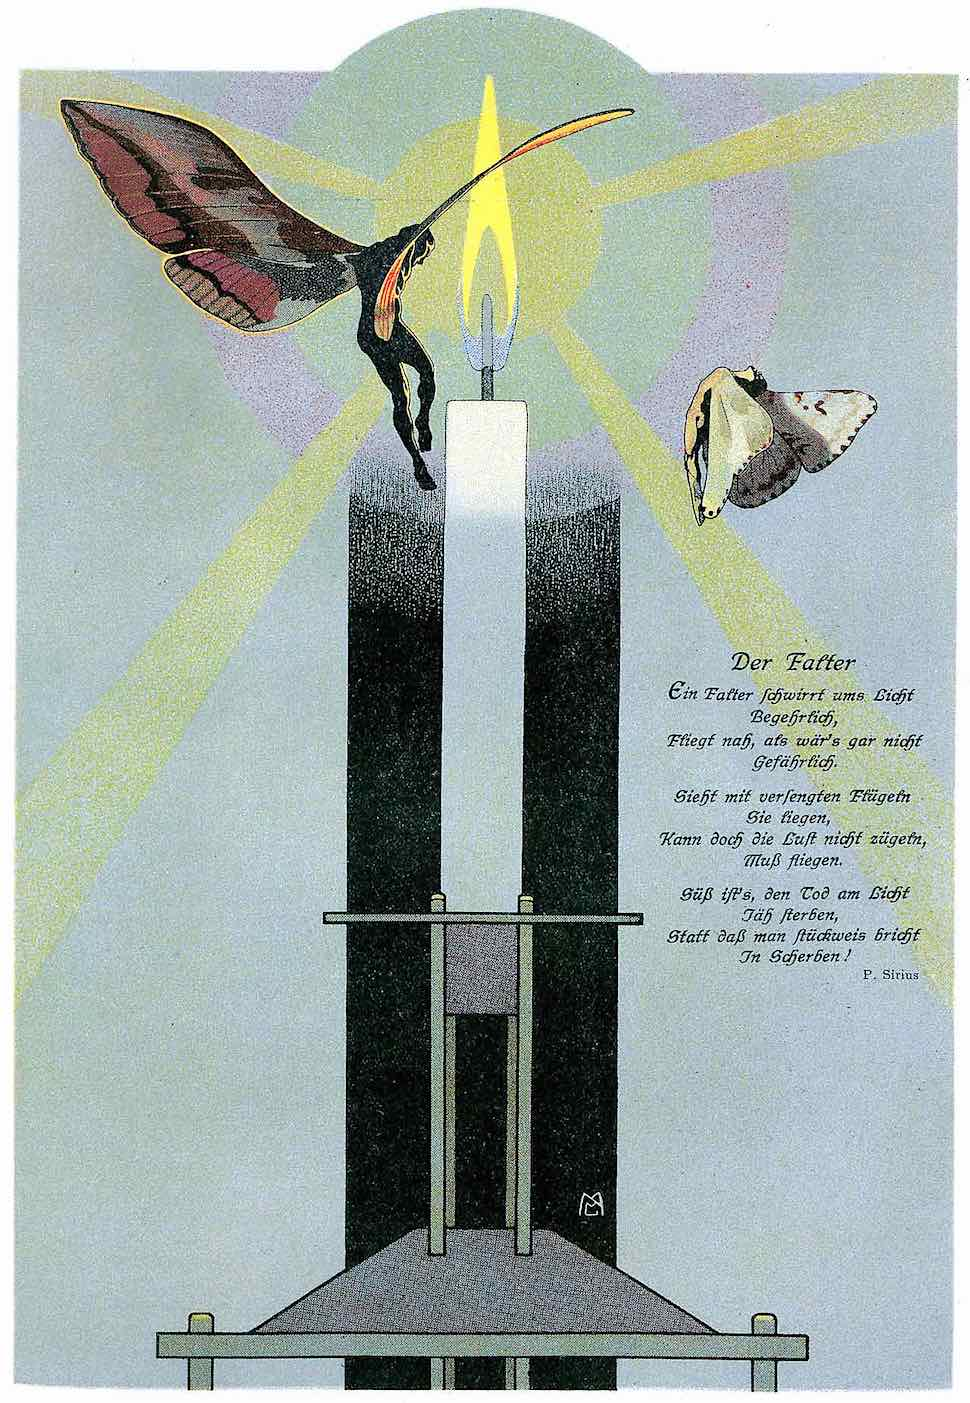 a Mila Von Luttich illustration 1910, flying too close to the flame